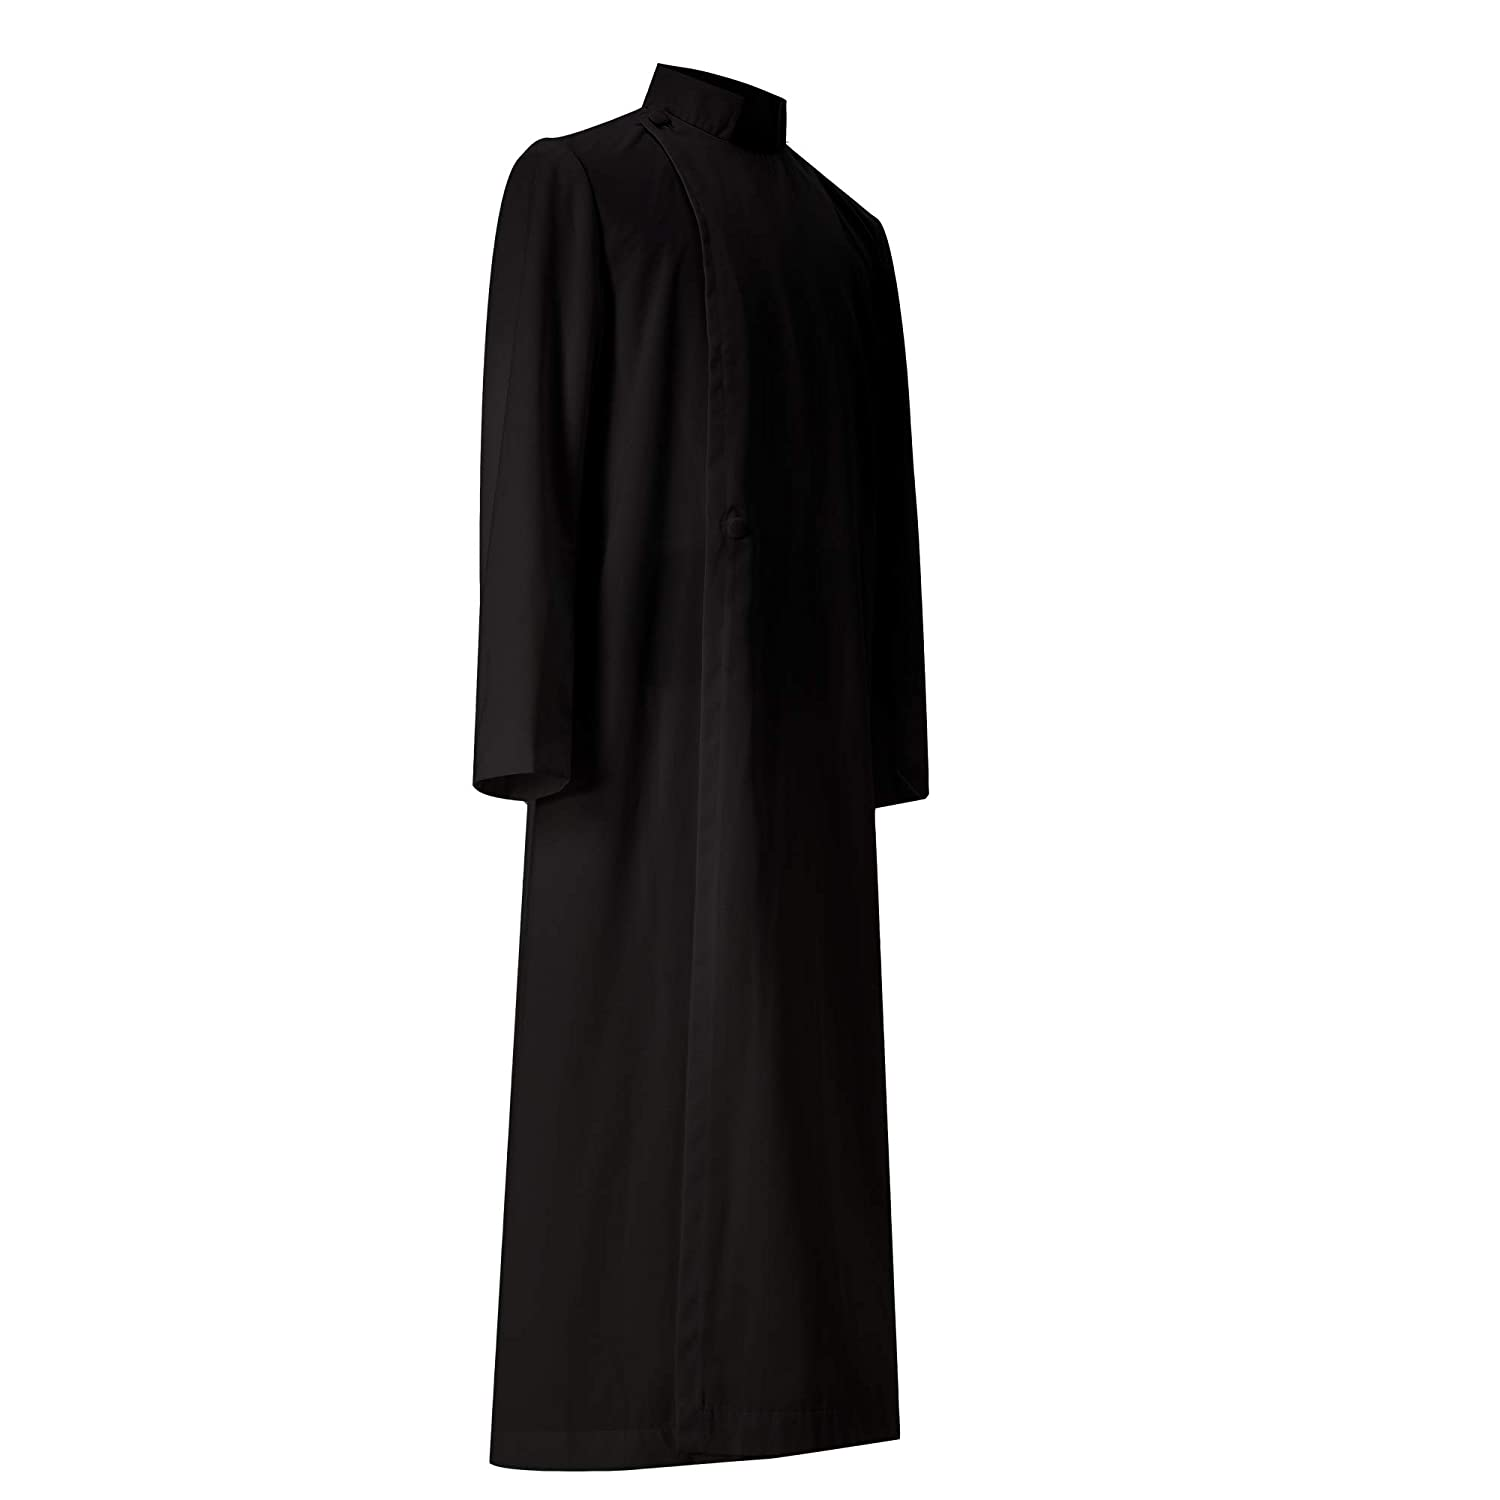 GGS Unisex Adults Clergy /& Pulpit Cassock